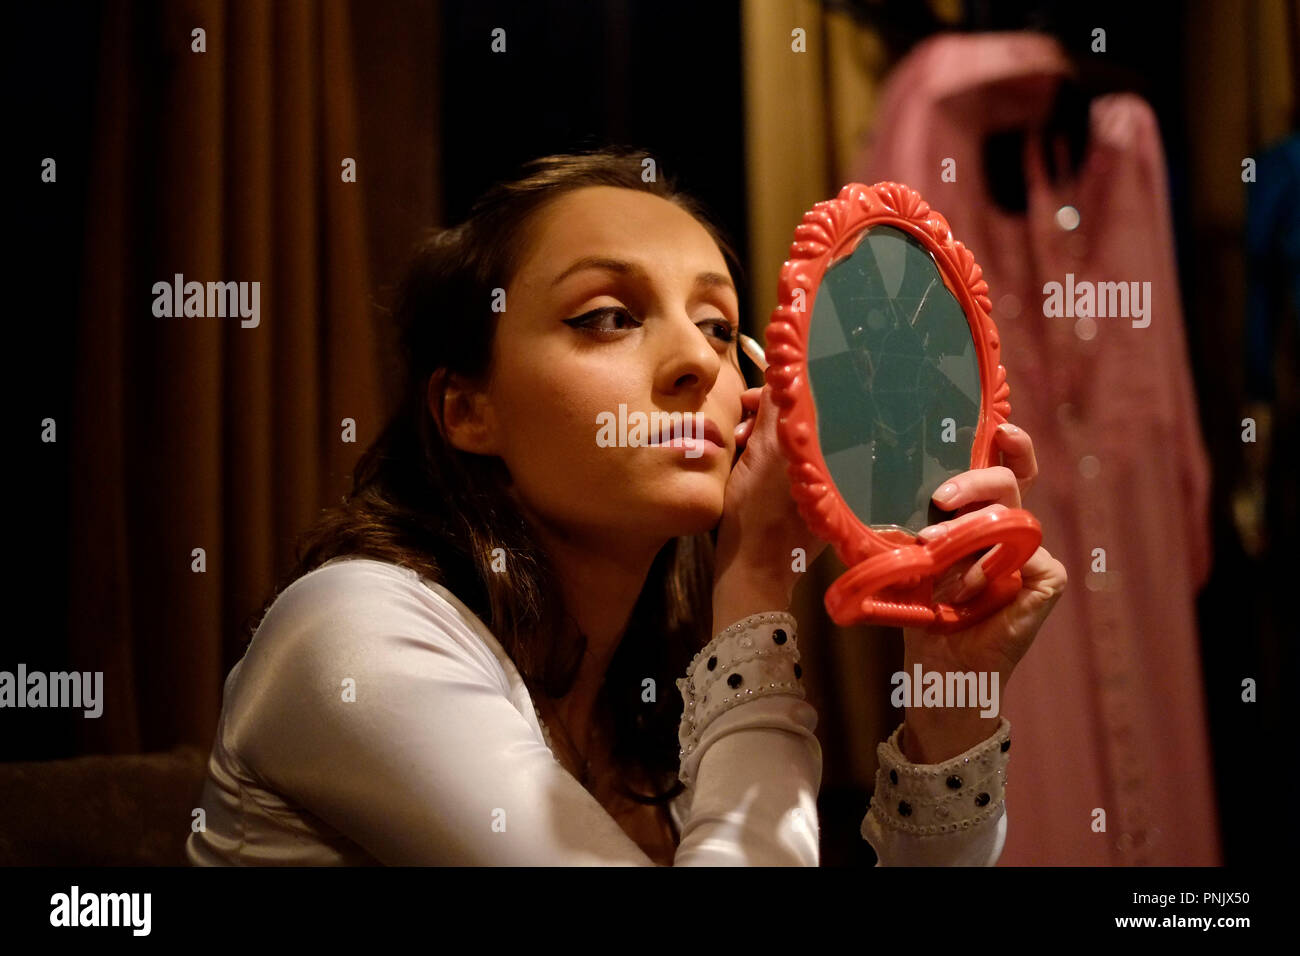 A Young Dancer Looking In The Mirror And Applying Makeup On Eyebrow